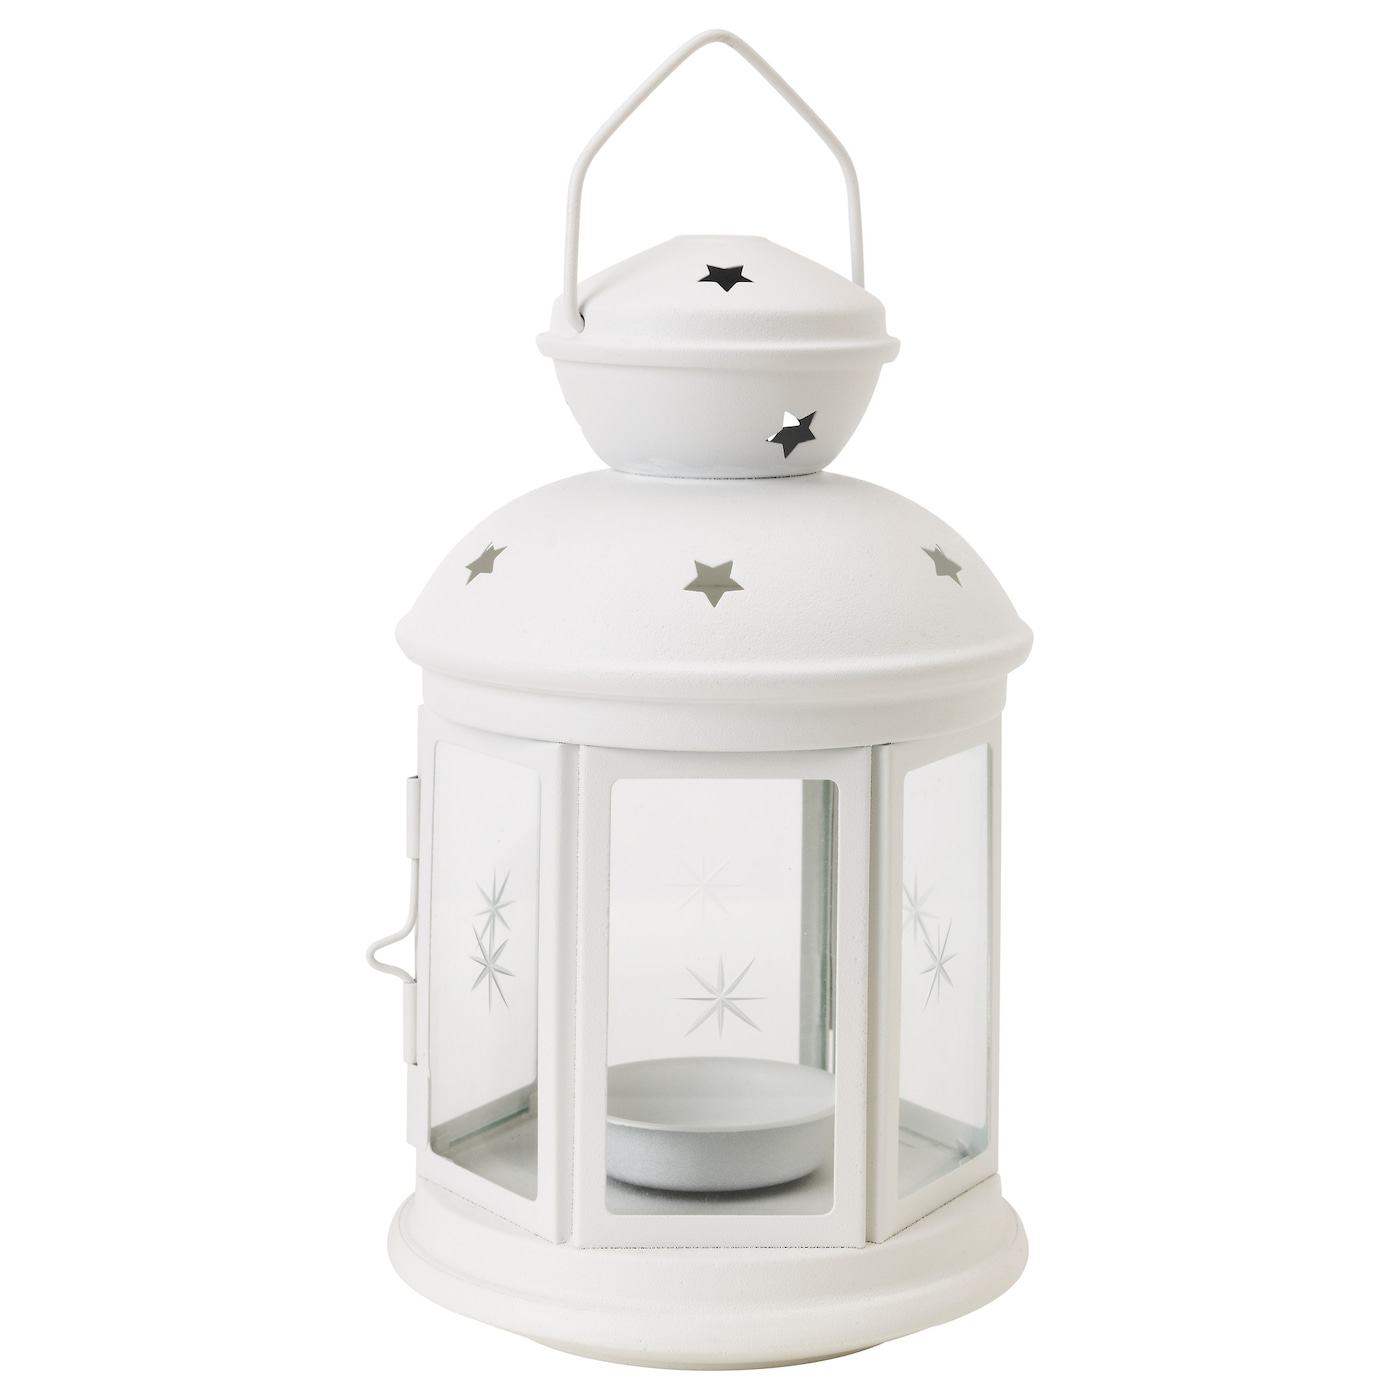 Rotera lantern for tealight in outdoor white 21 cm ikea - Lanterne portacandele ikea ...